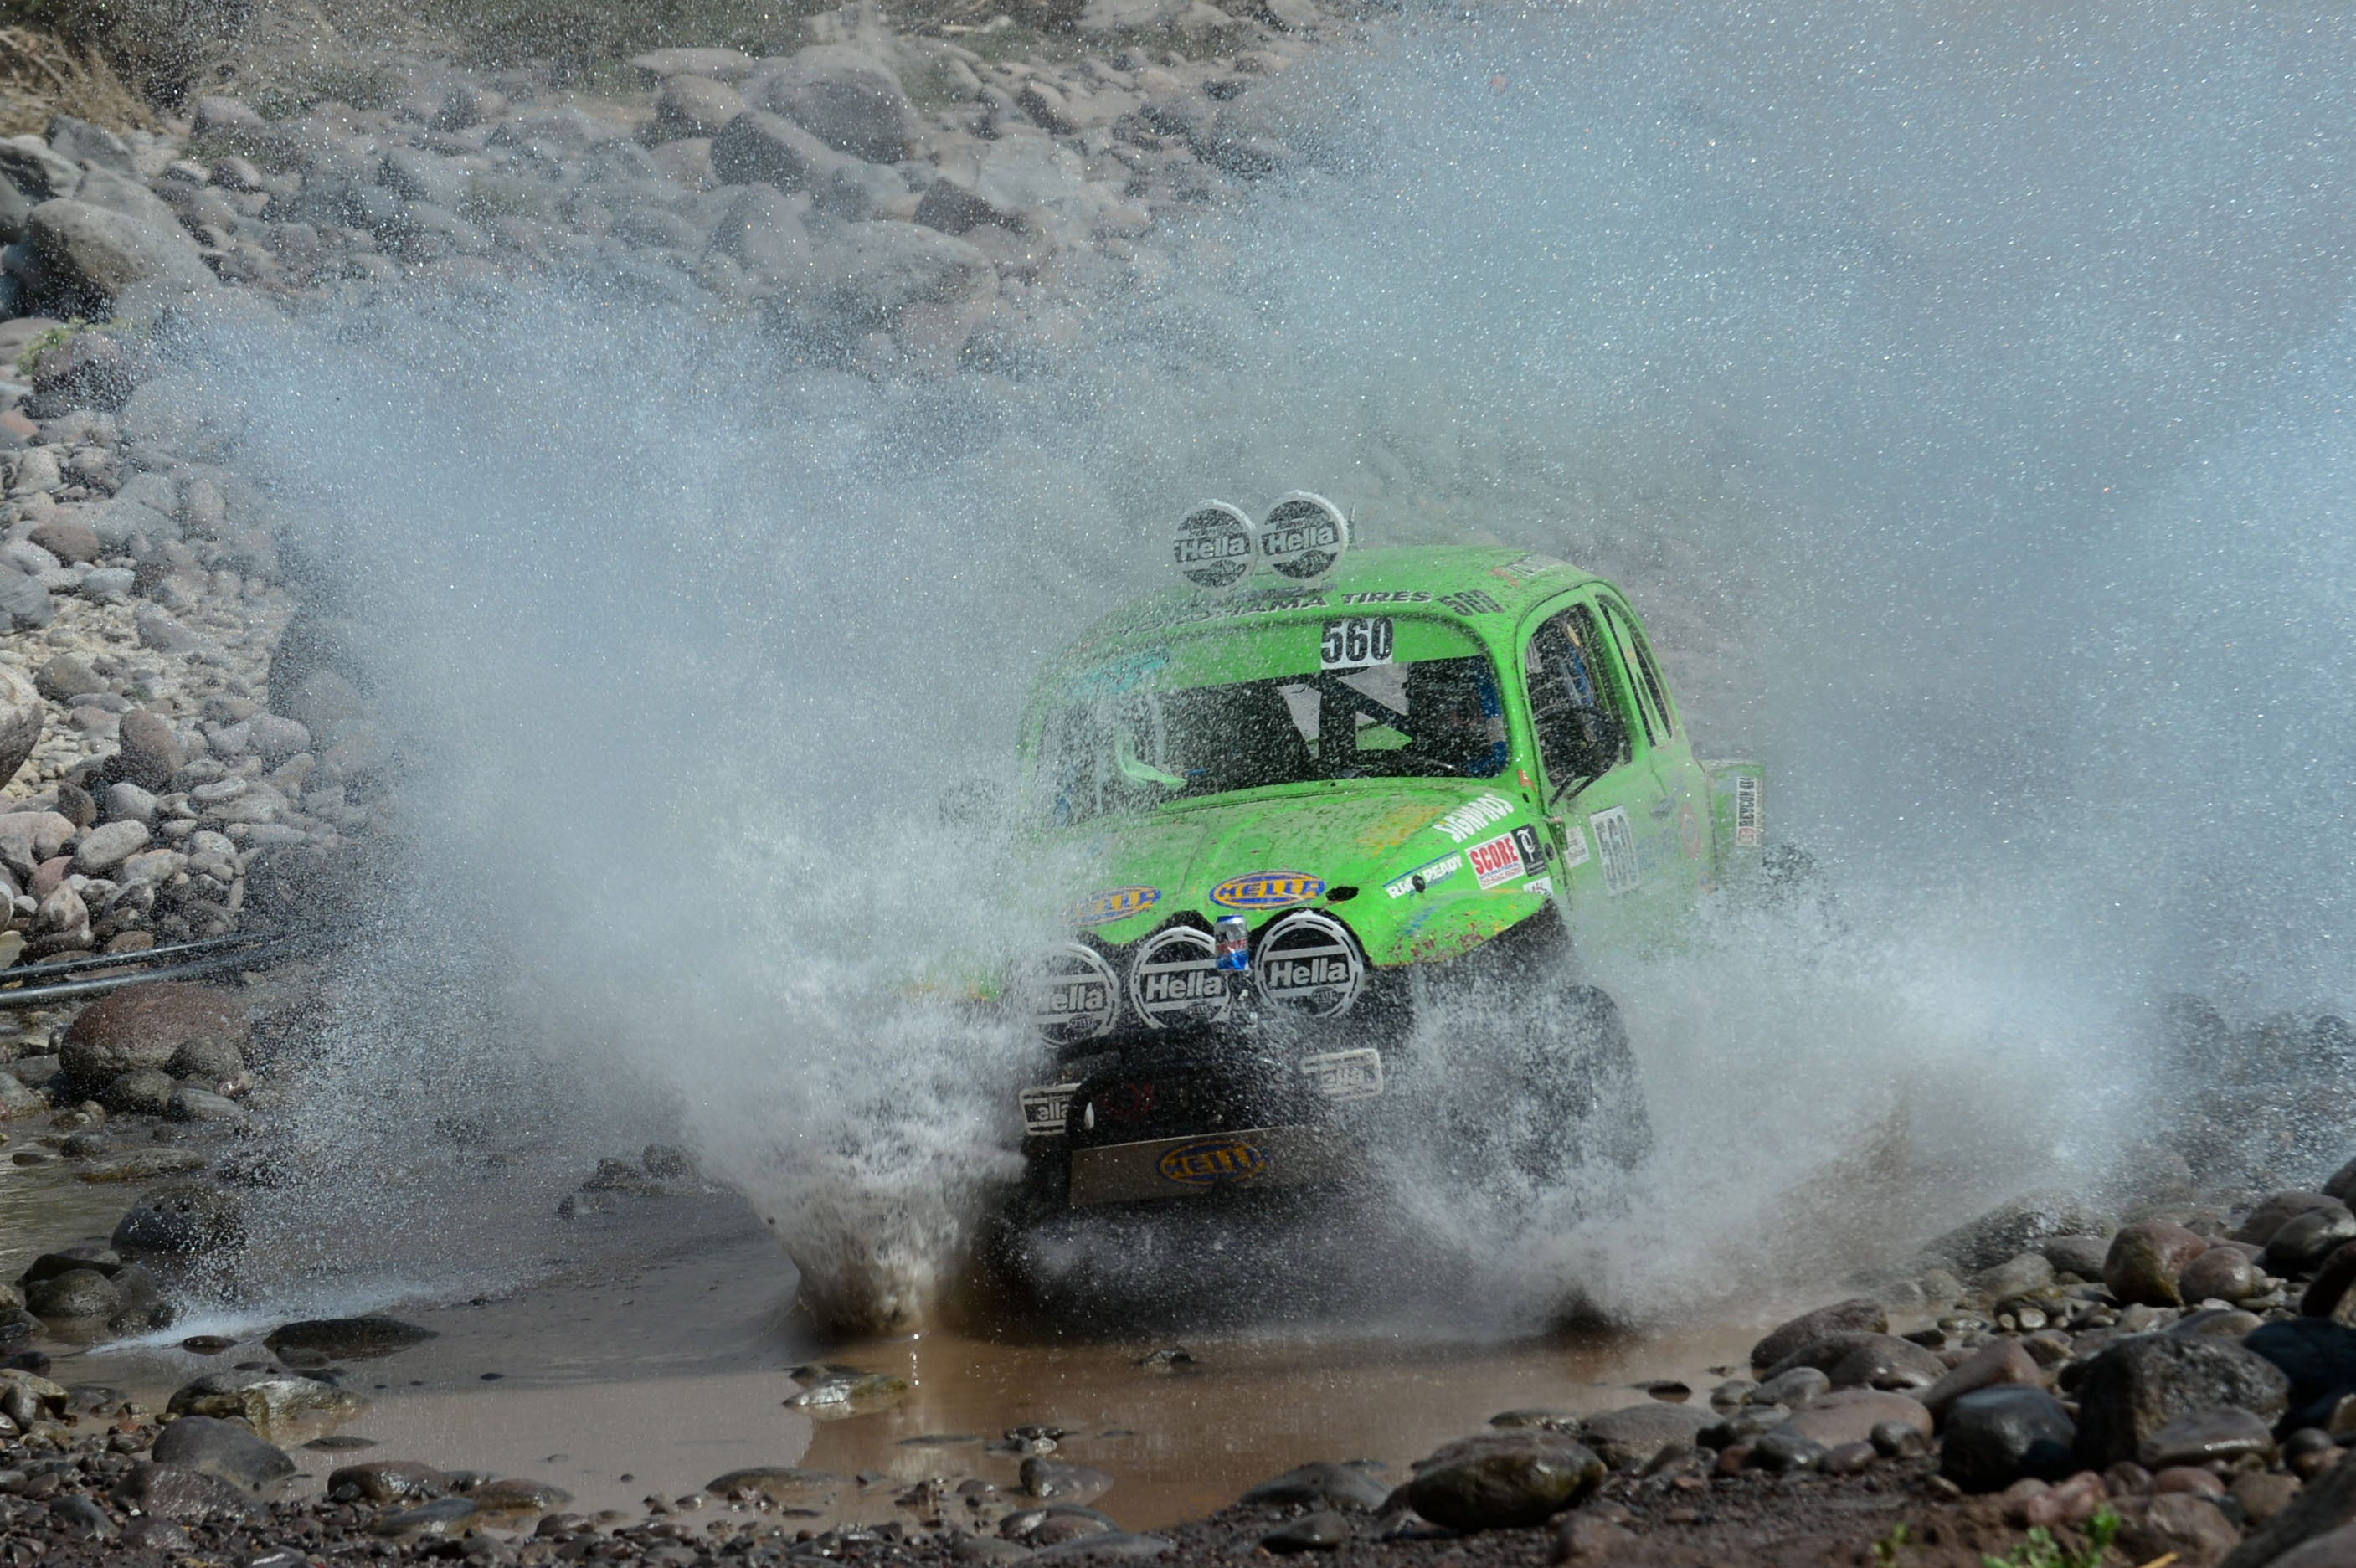 NORRA Vintage Buggy driver Ryan Baillargeon races through a stream during stage 1 of day 4 of the Mexican 1000 in San Javier, Mexico.